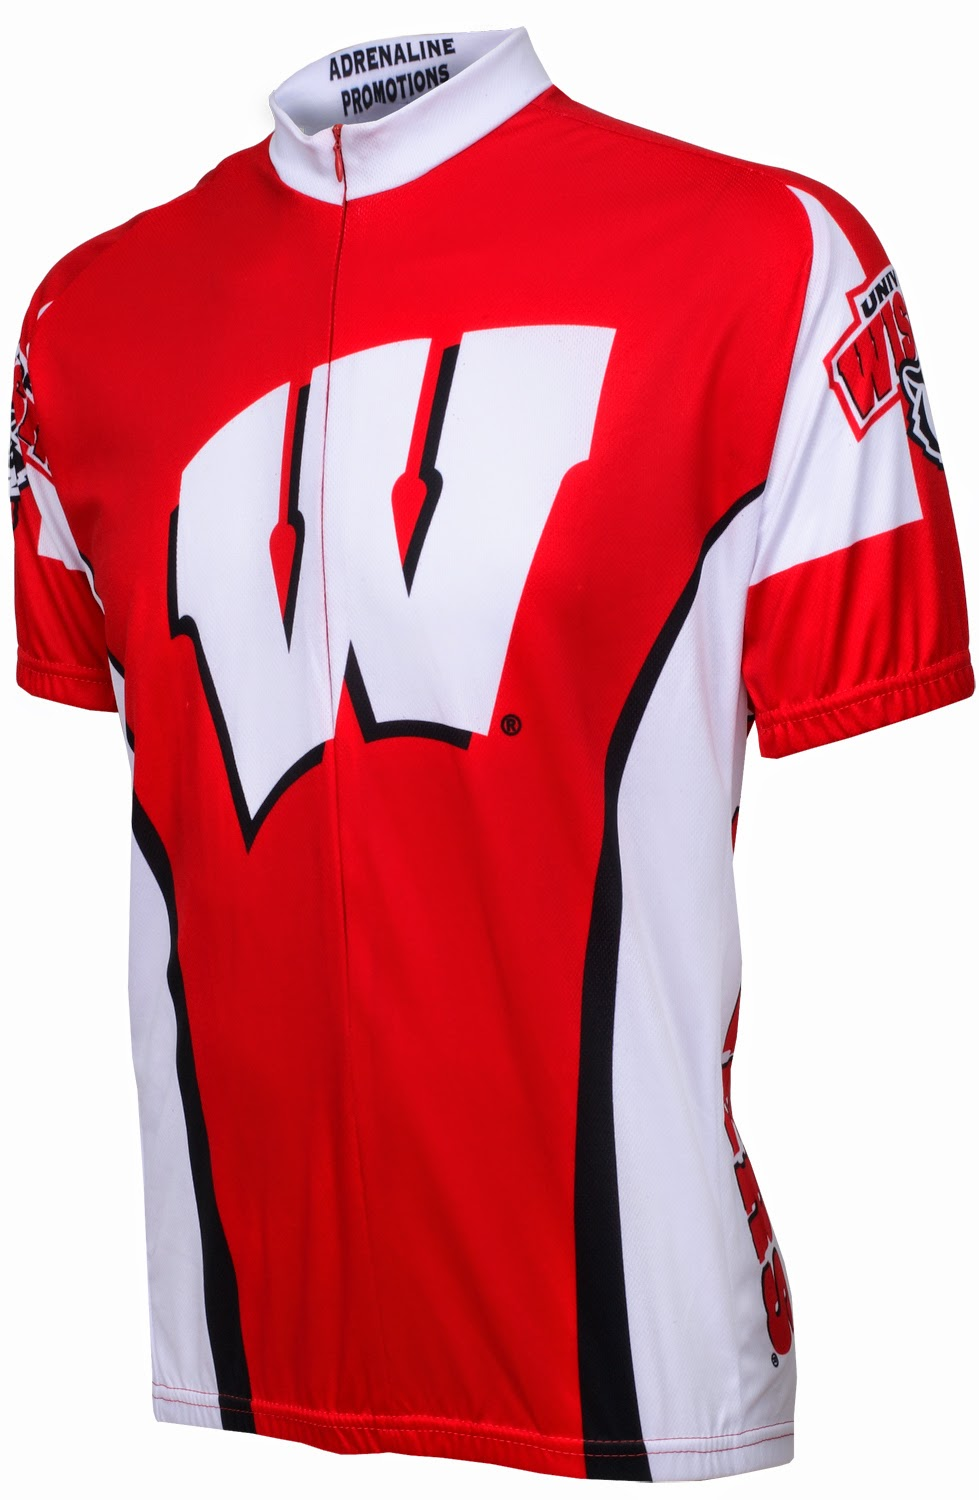 WisconsinCyclingJersey